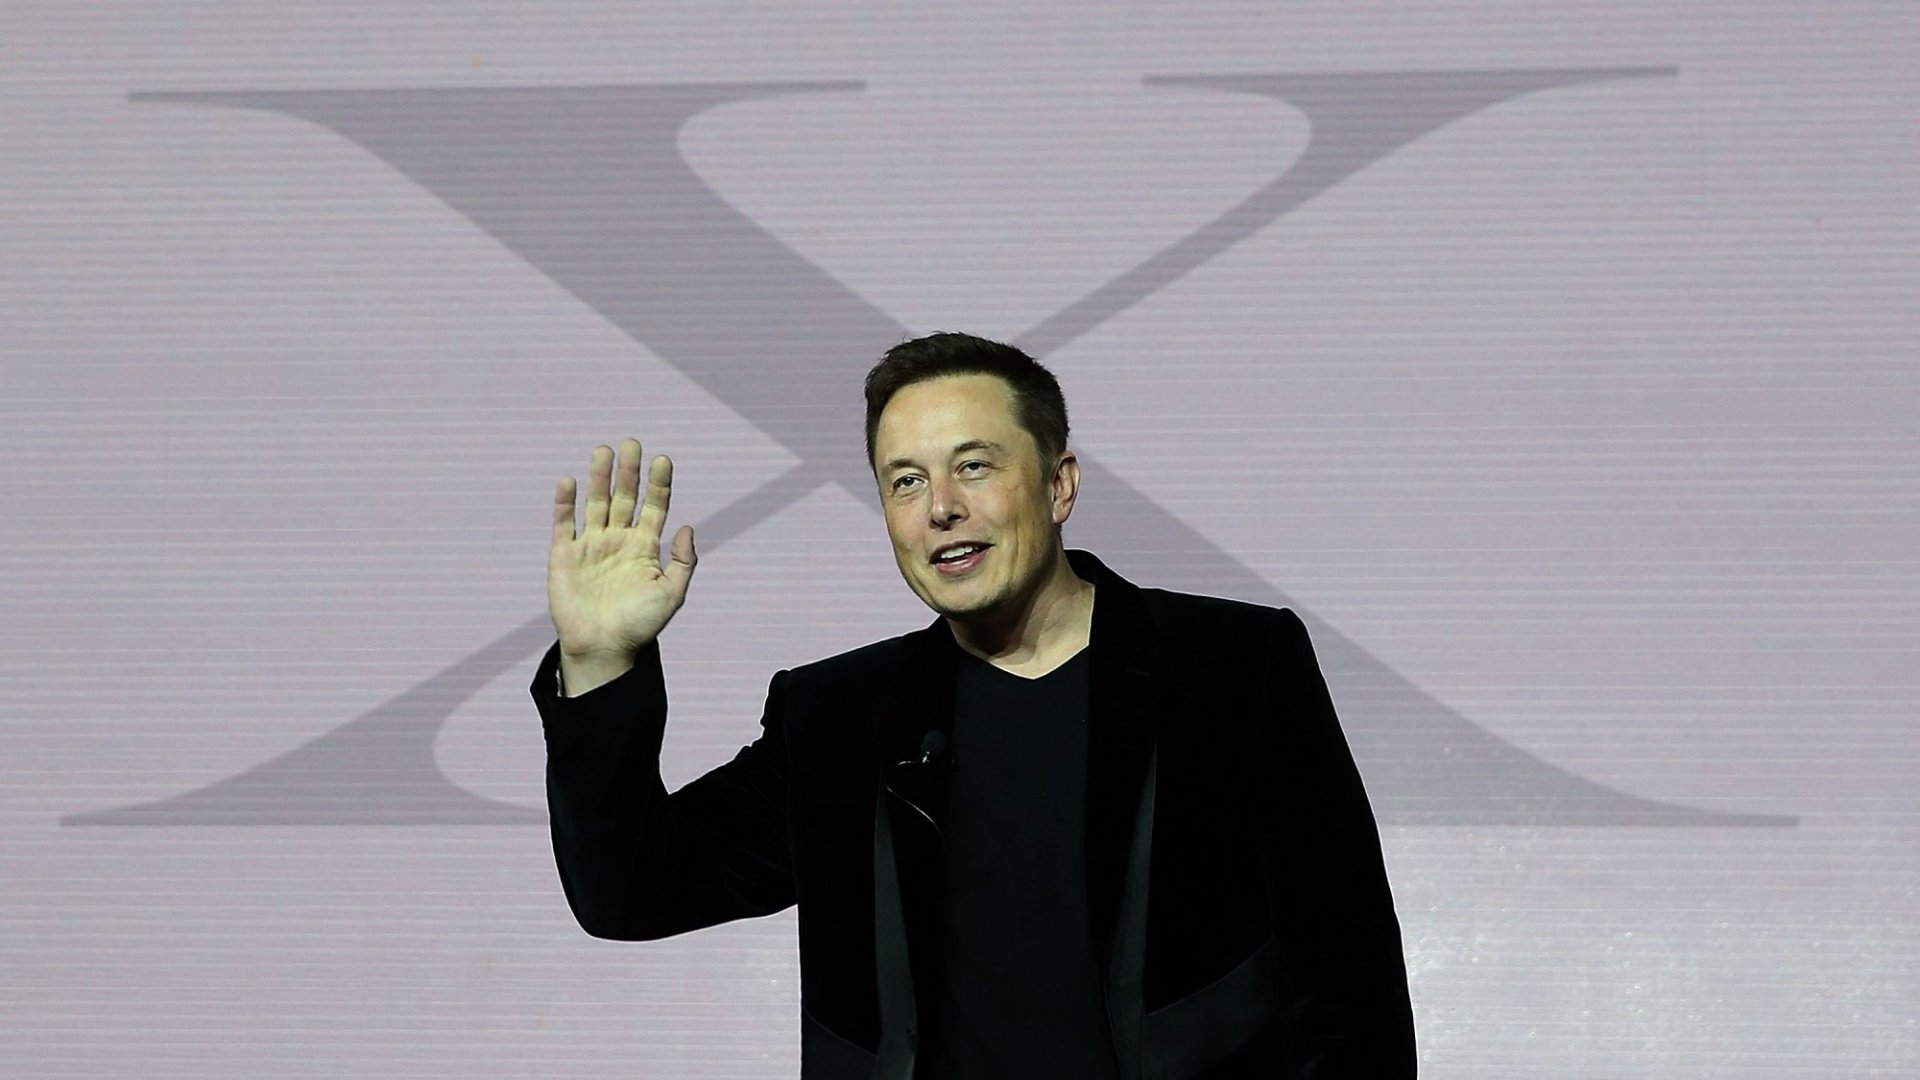 This Is the Best Possible News for Elon Musk and Tesla